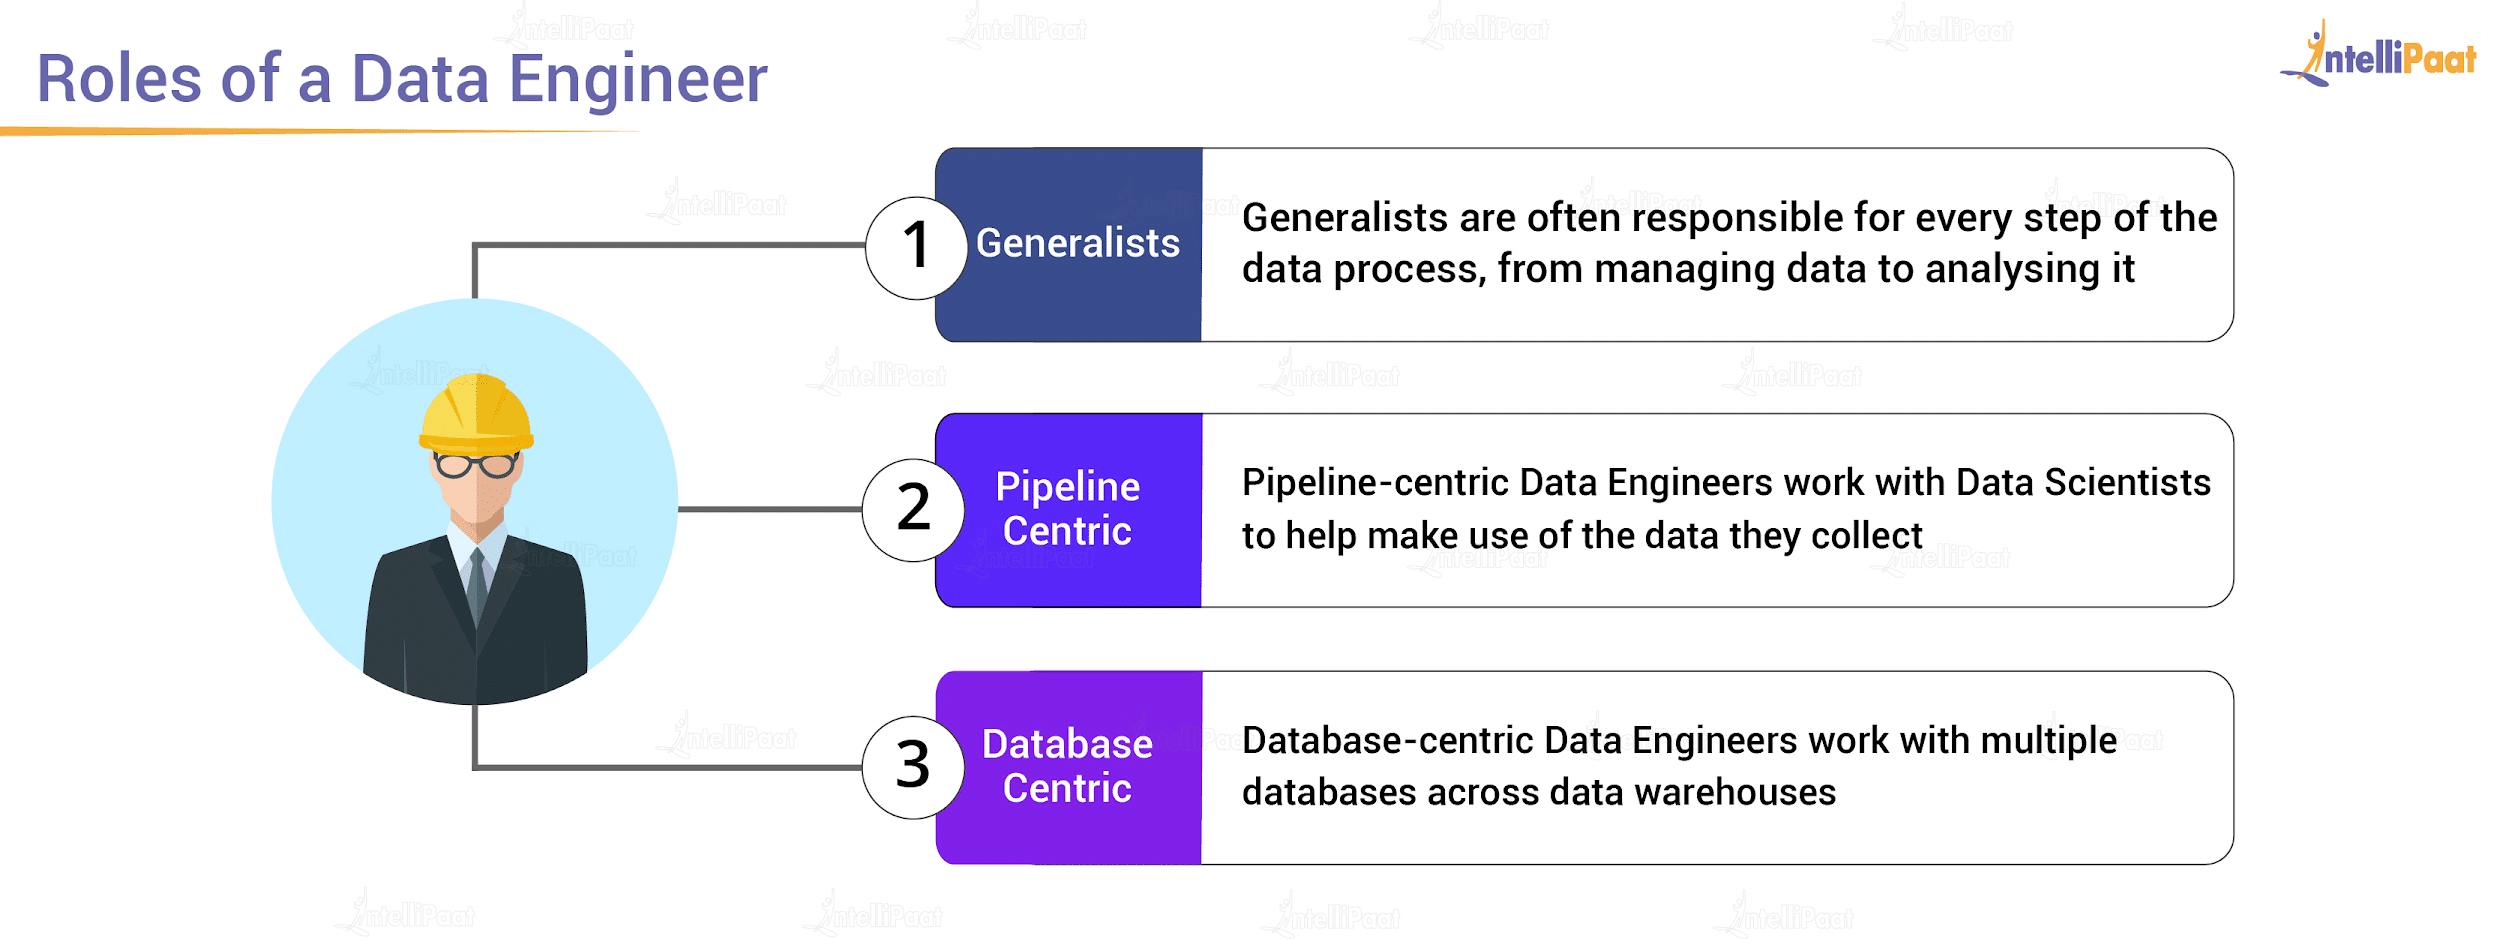 Roles of a Data Engineer